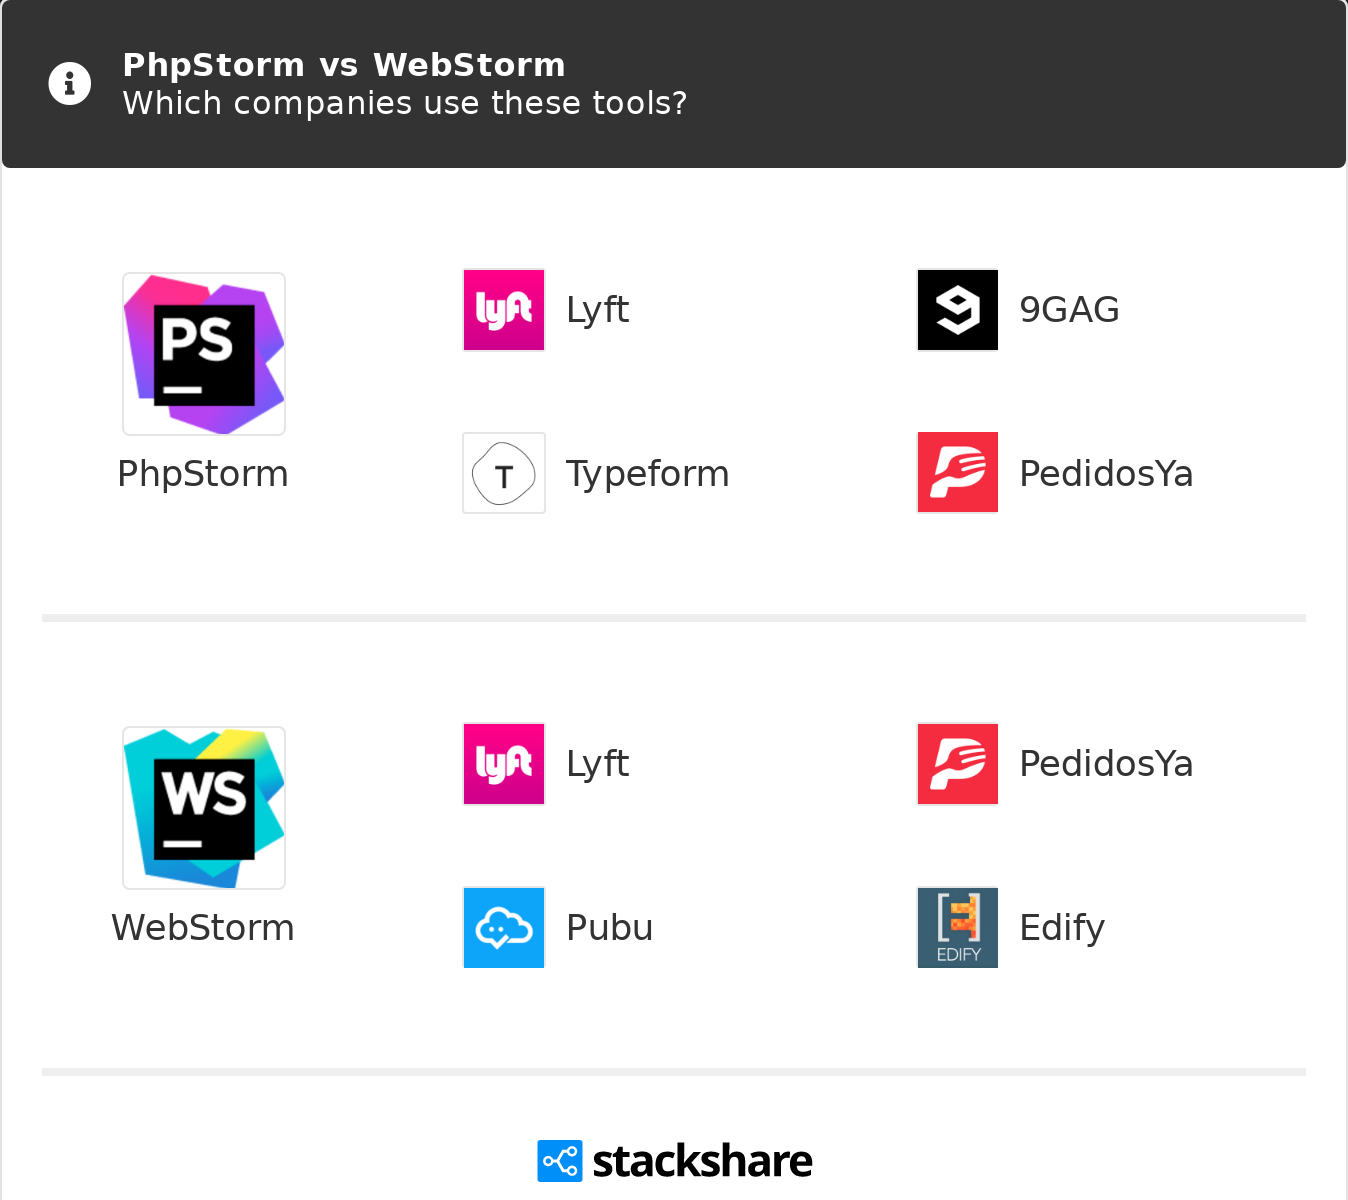 PhpStorm vs WebStorm | What are the differences?